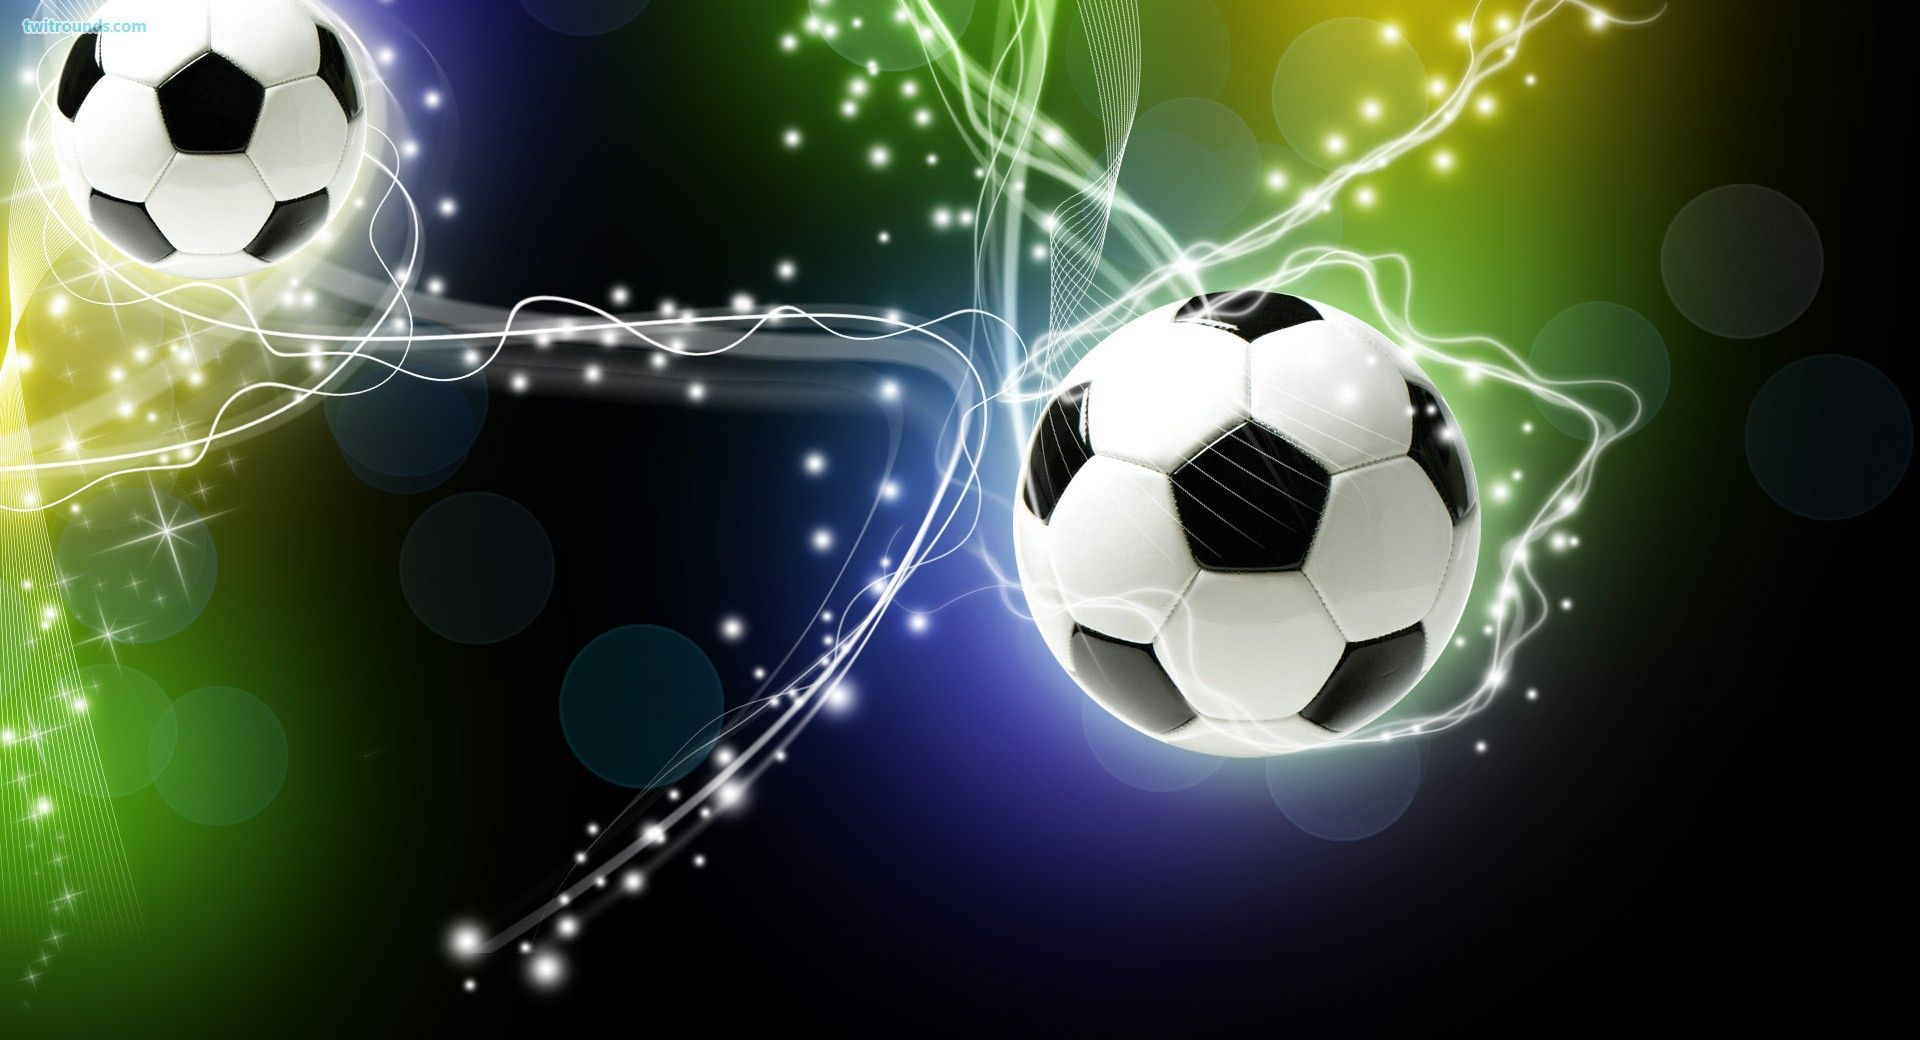 Cool Soccer Pictures Soccer Ball Soccer Pictures Soccer Backgrounds